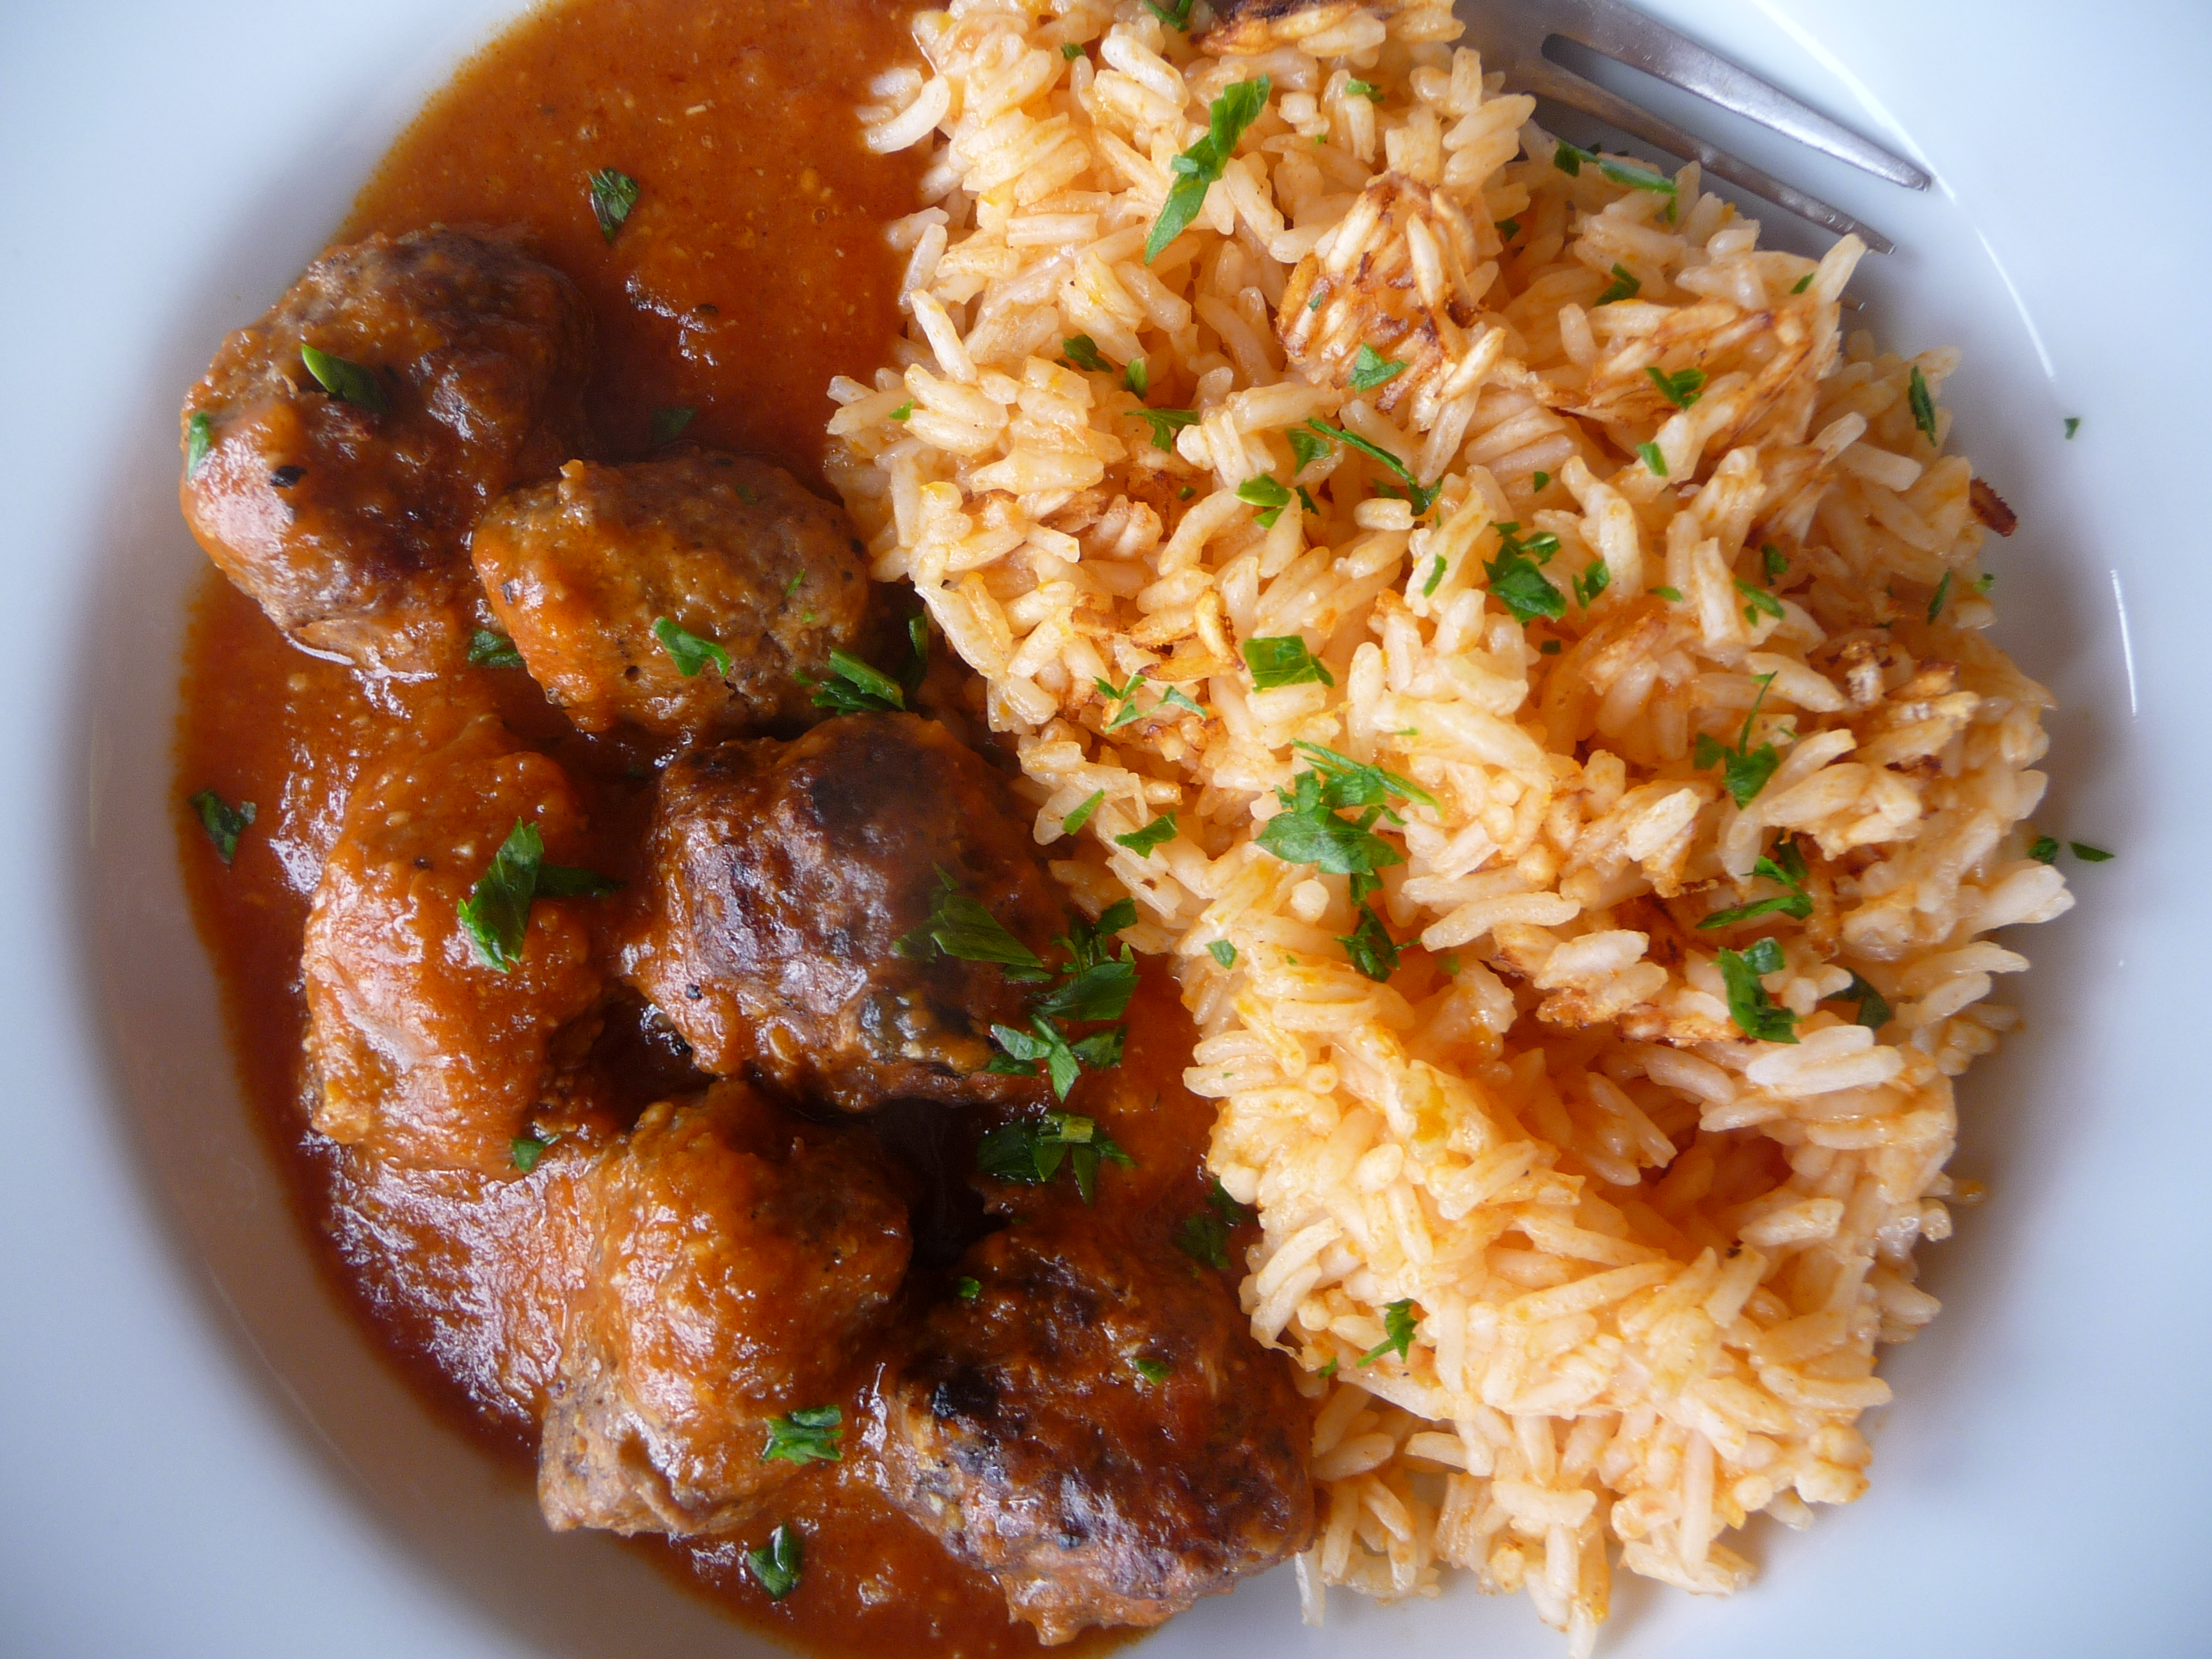 Meatballs And Rice In A Middle Eastern Way